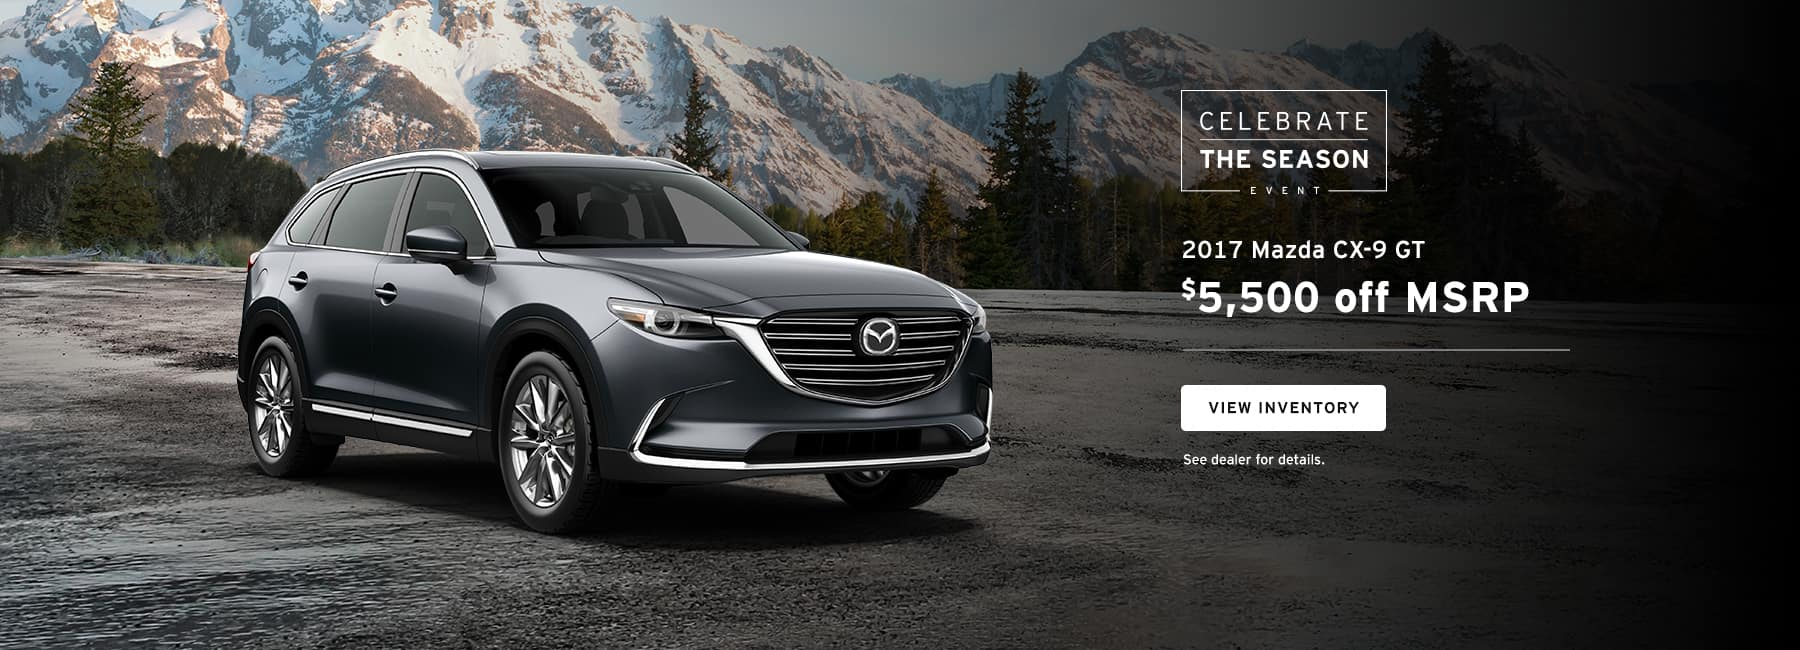 CX9 GT December Offer Biggers Mazda